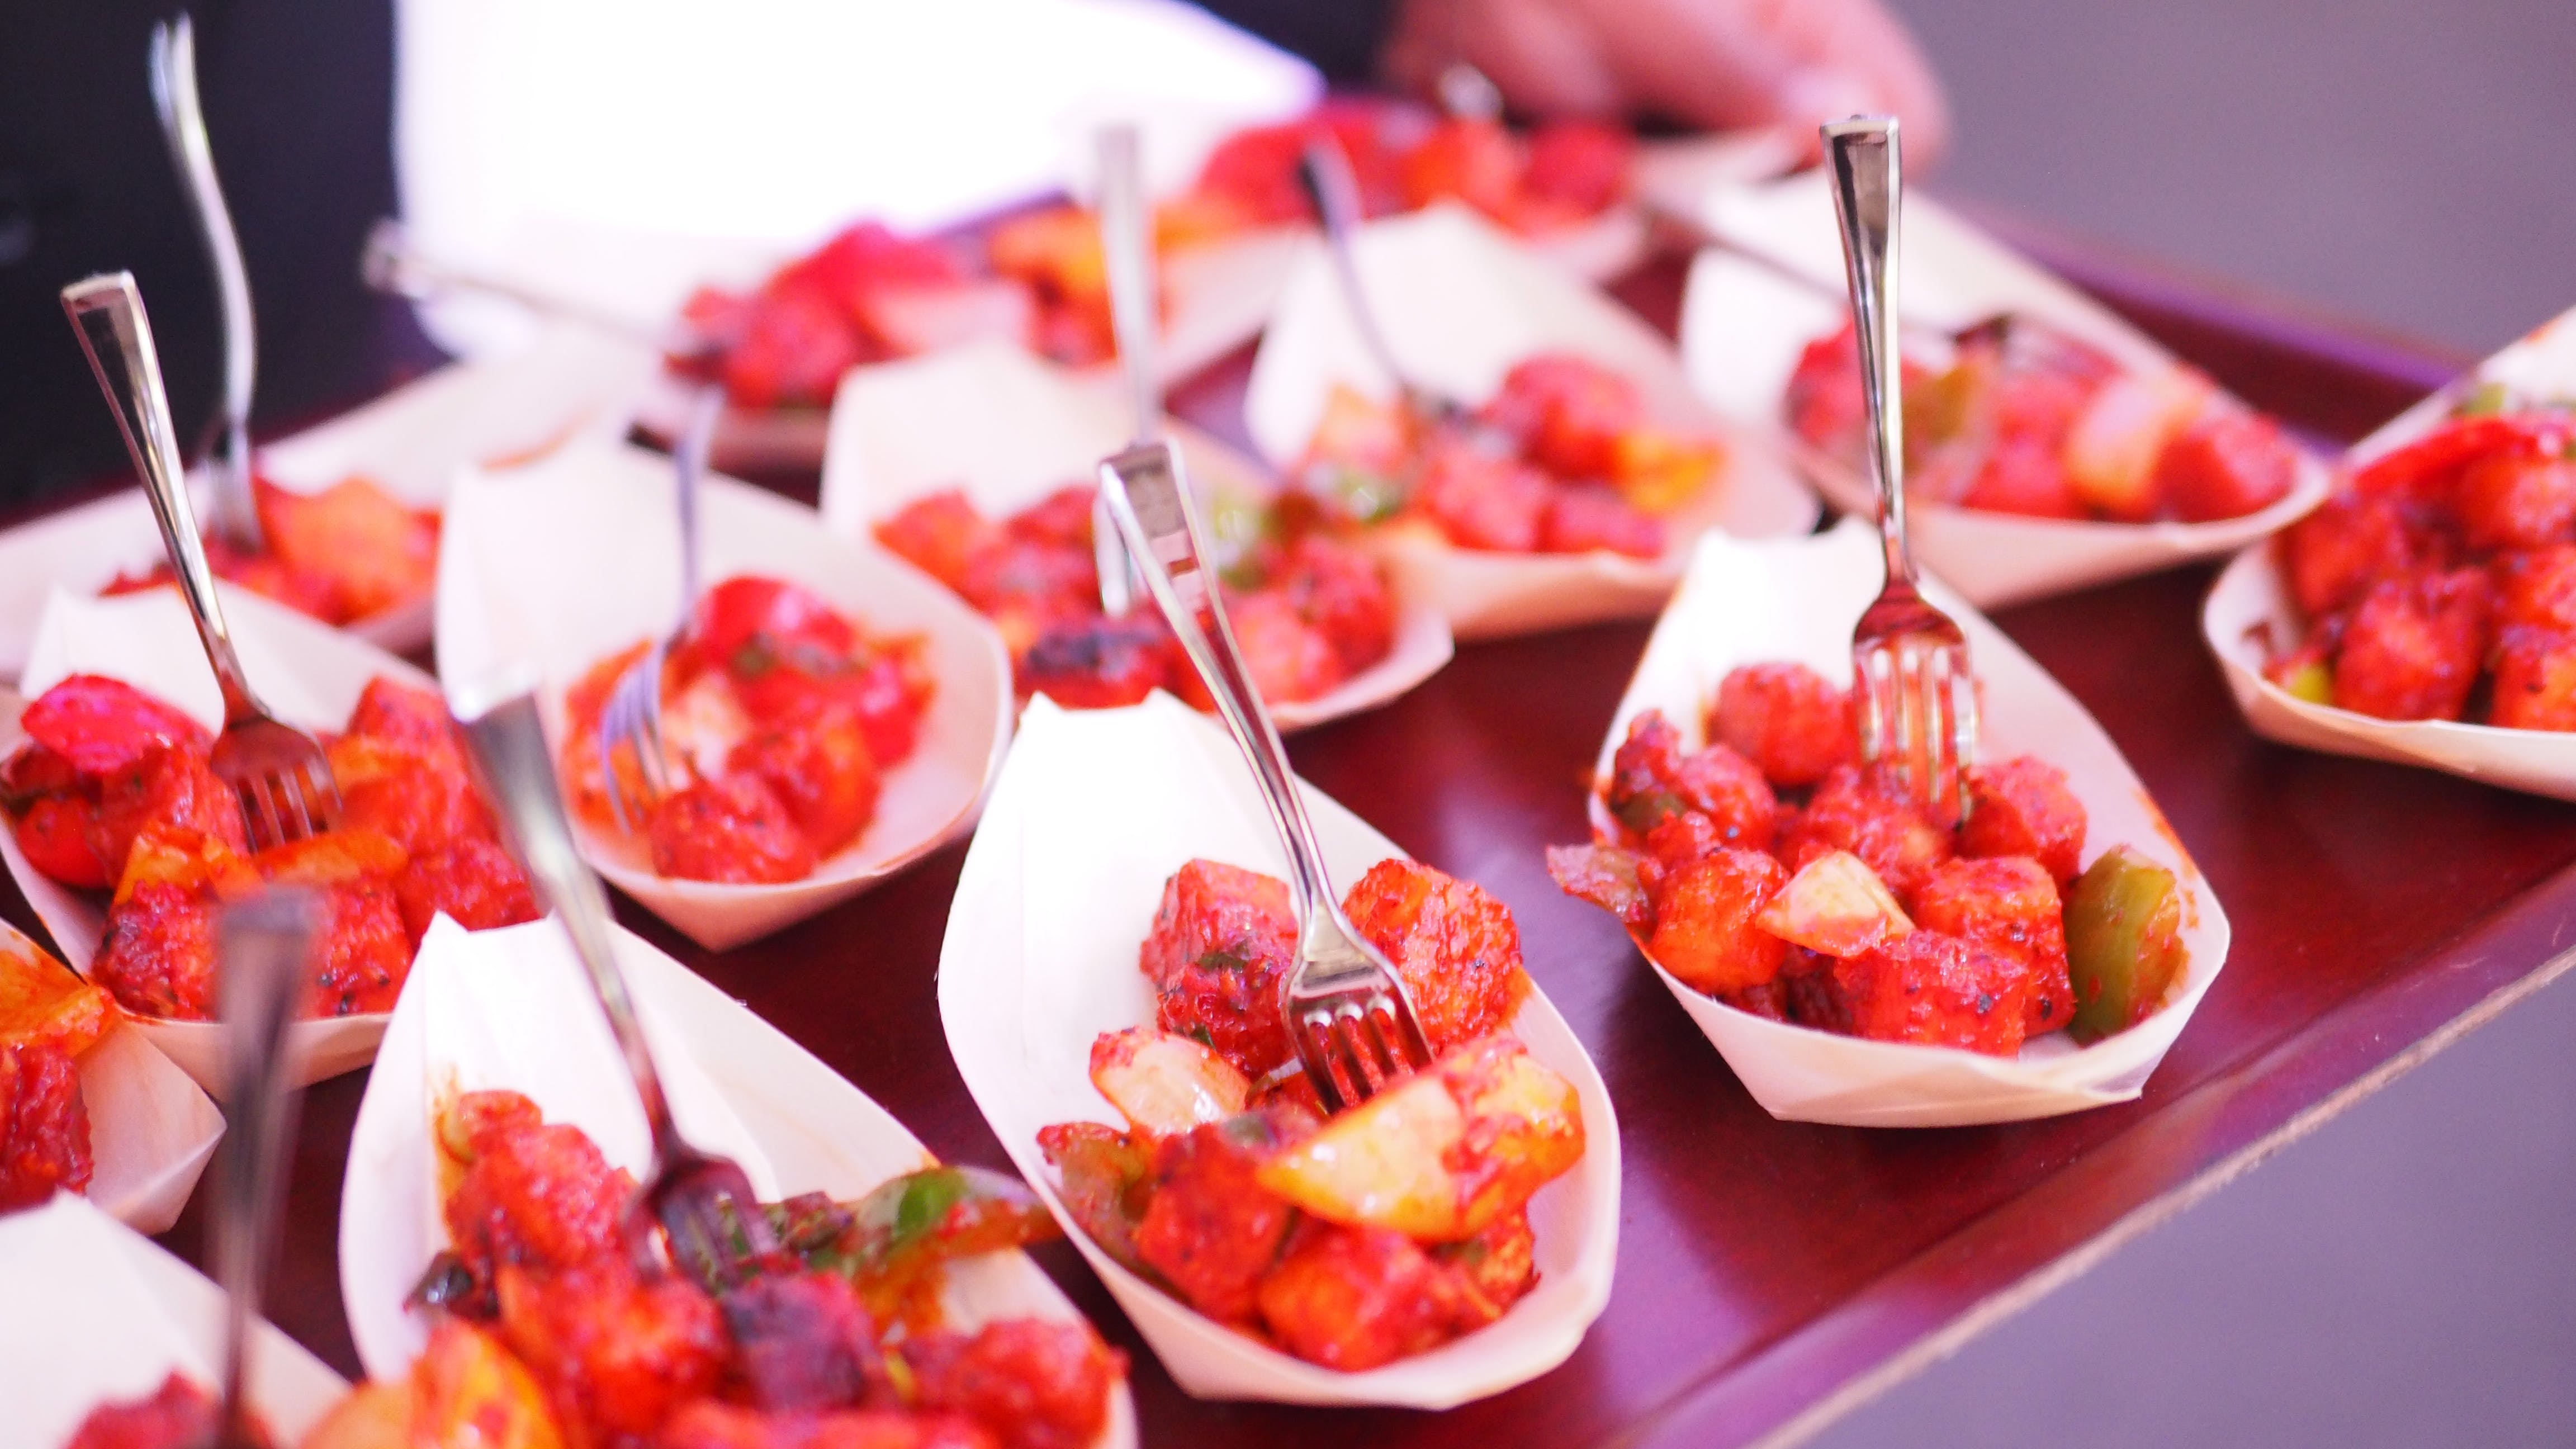 Free stock photo of catering, event food, indian, indian food